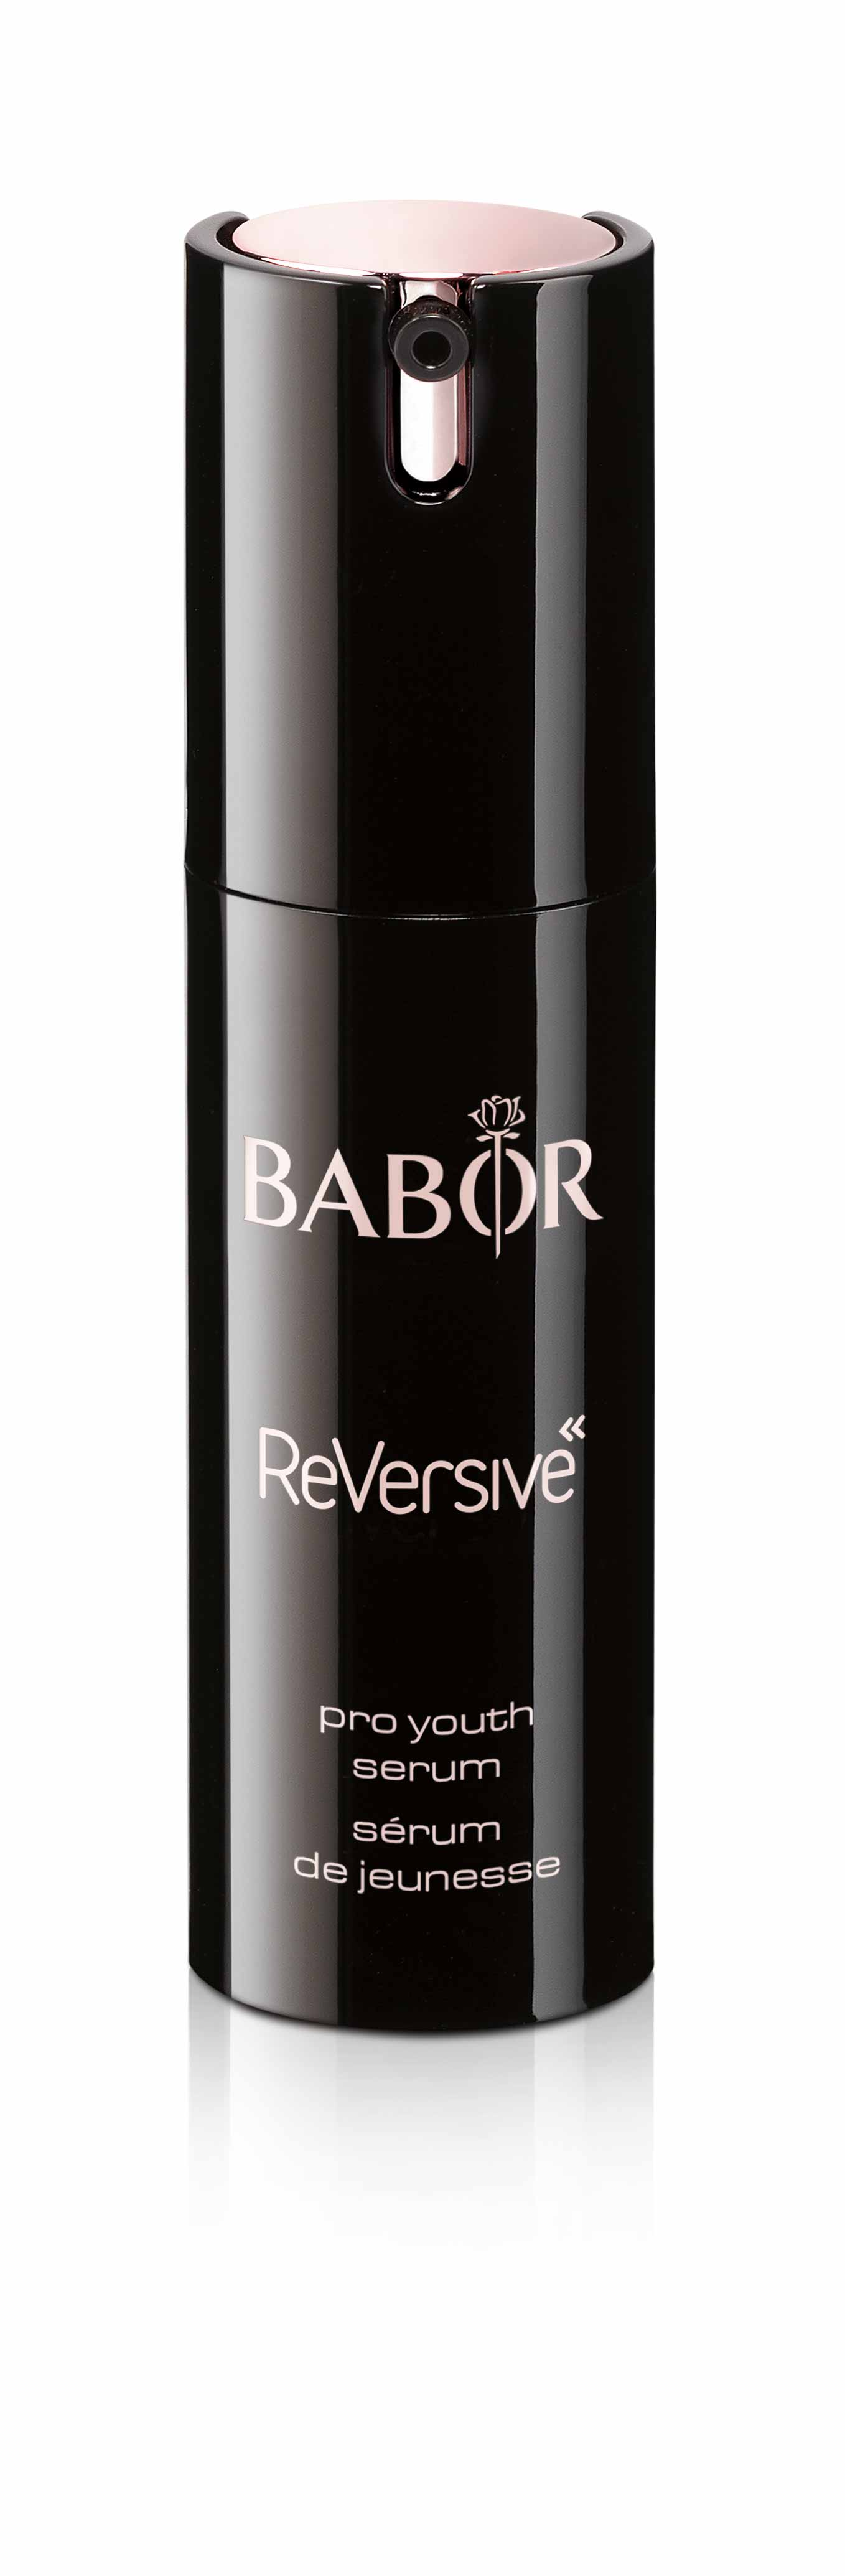 2019 reversive pro youth serum